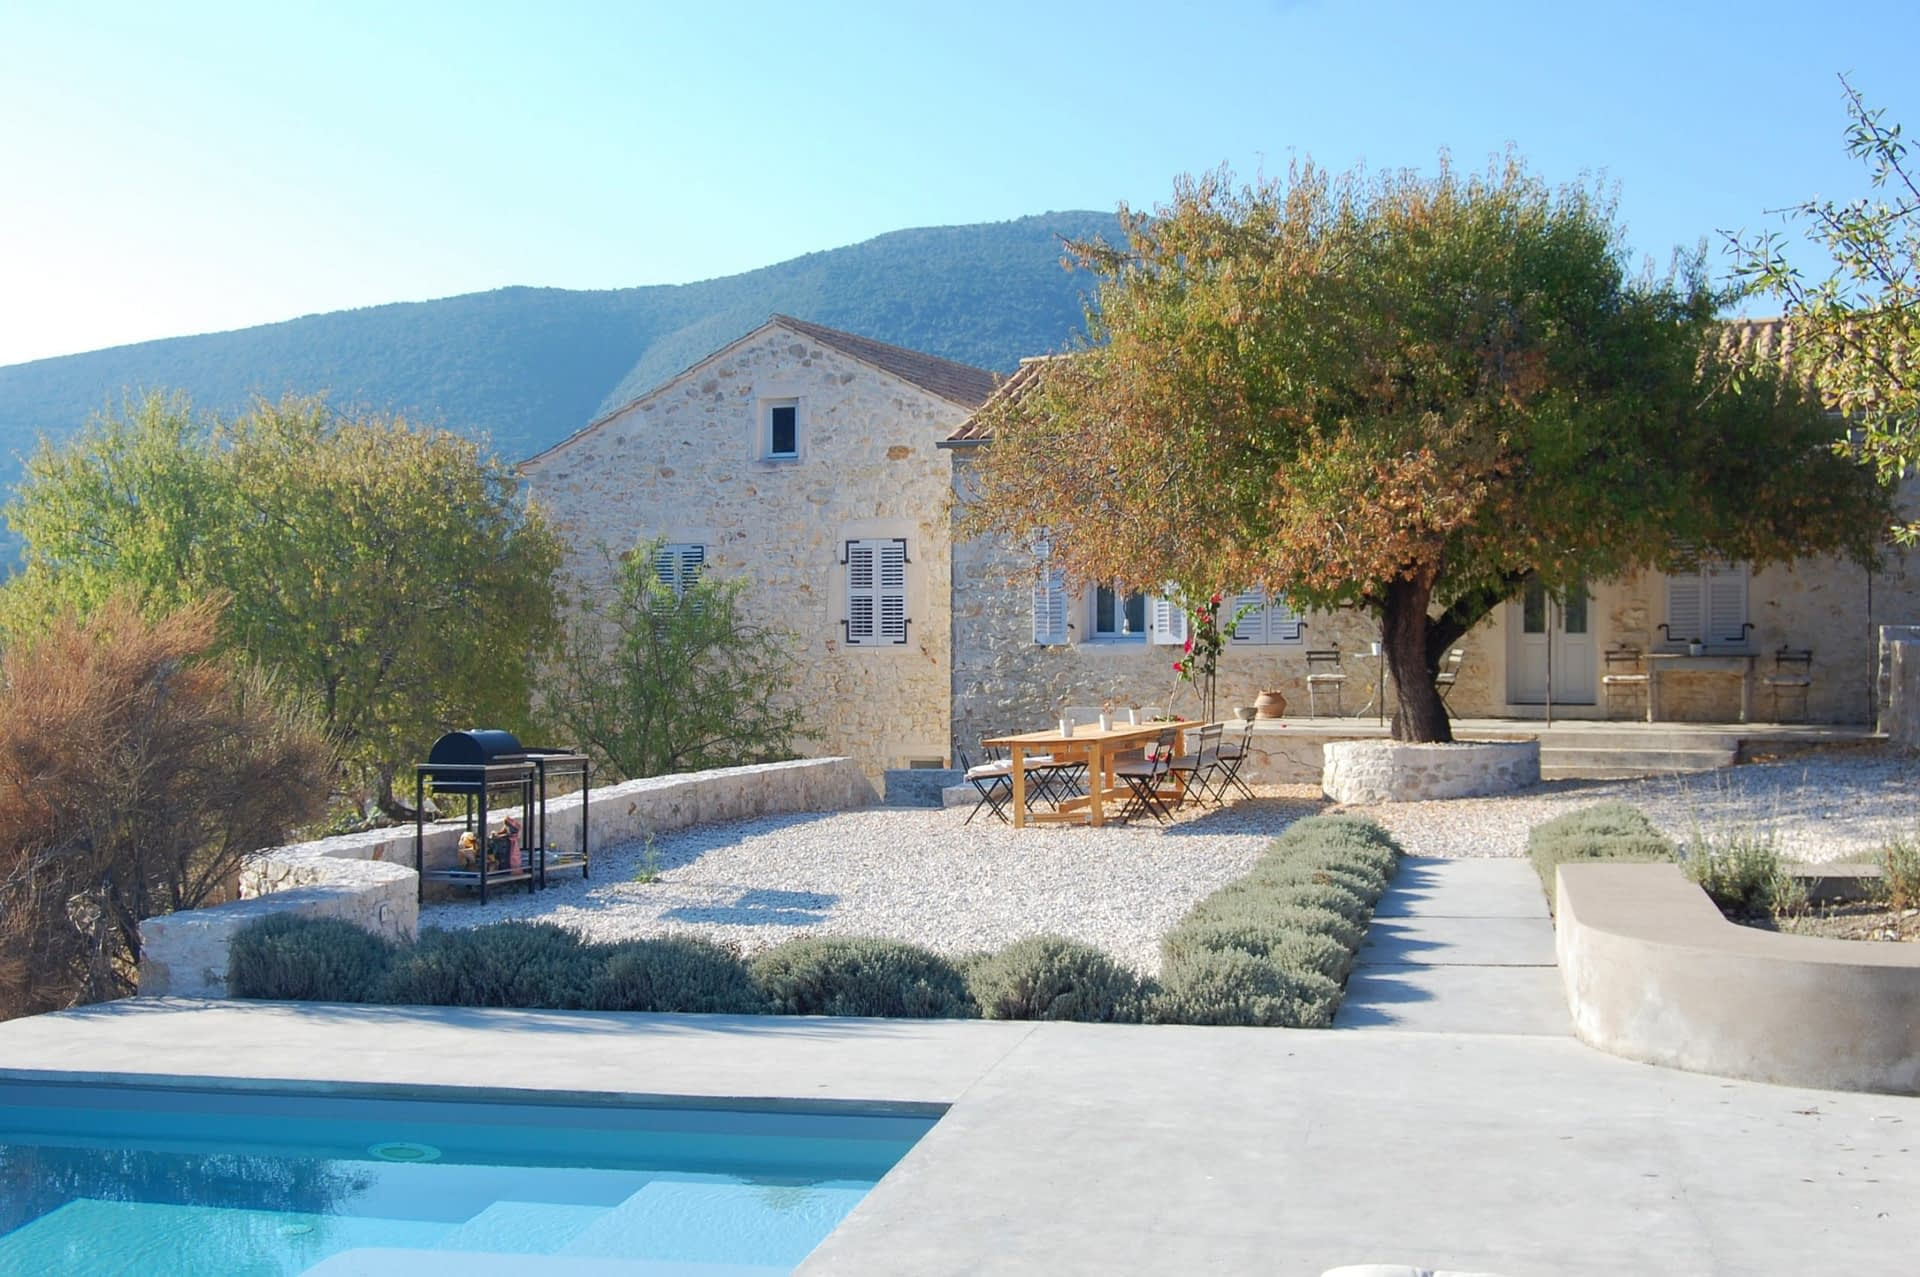 Salt water pool area and entertainment area at Villa Kalos for rent, Ithaca Greece Lahos